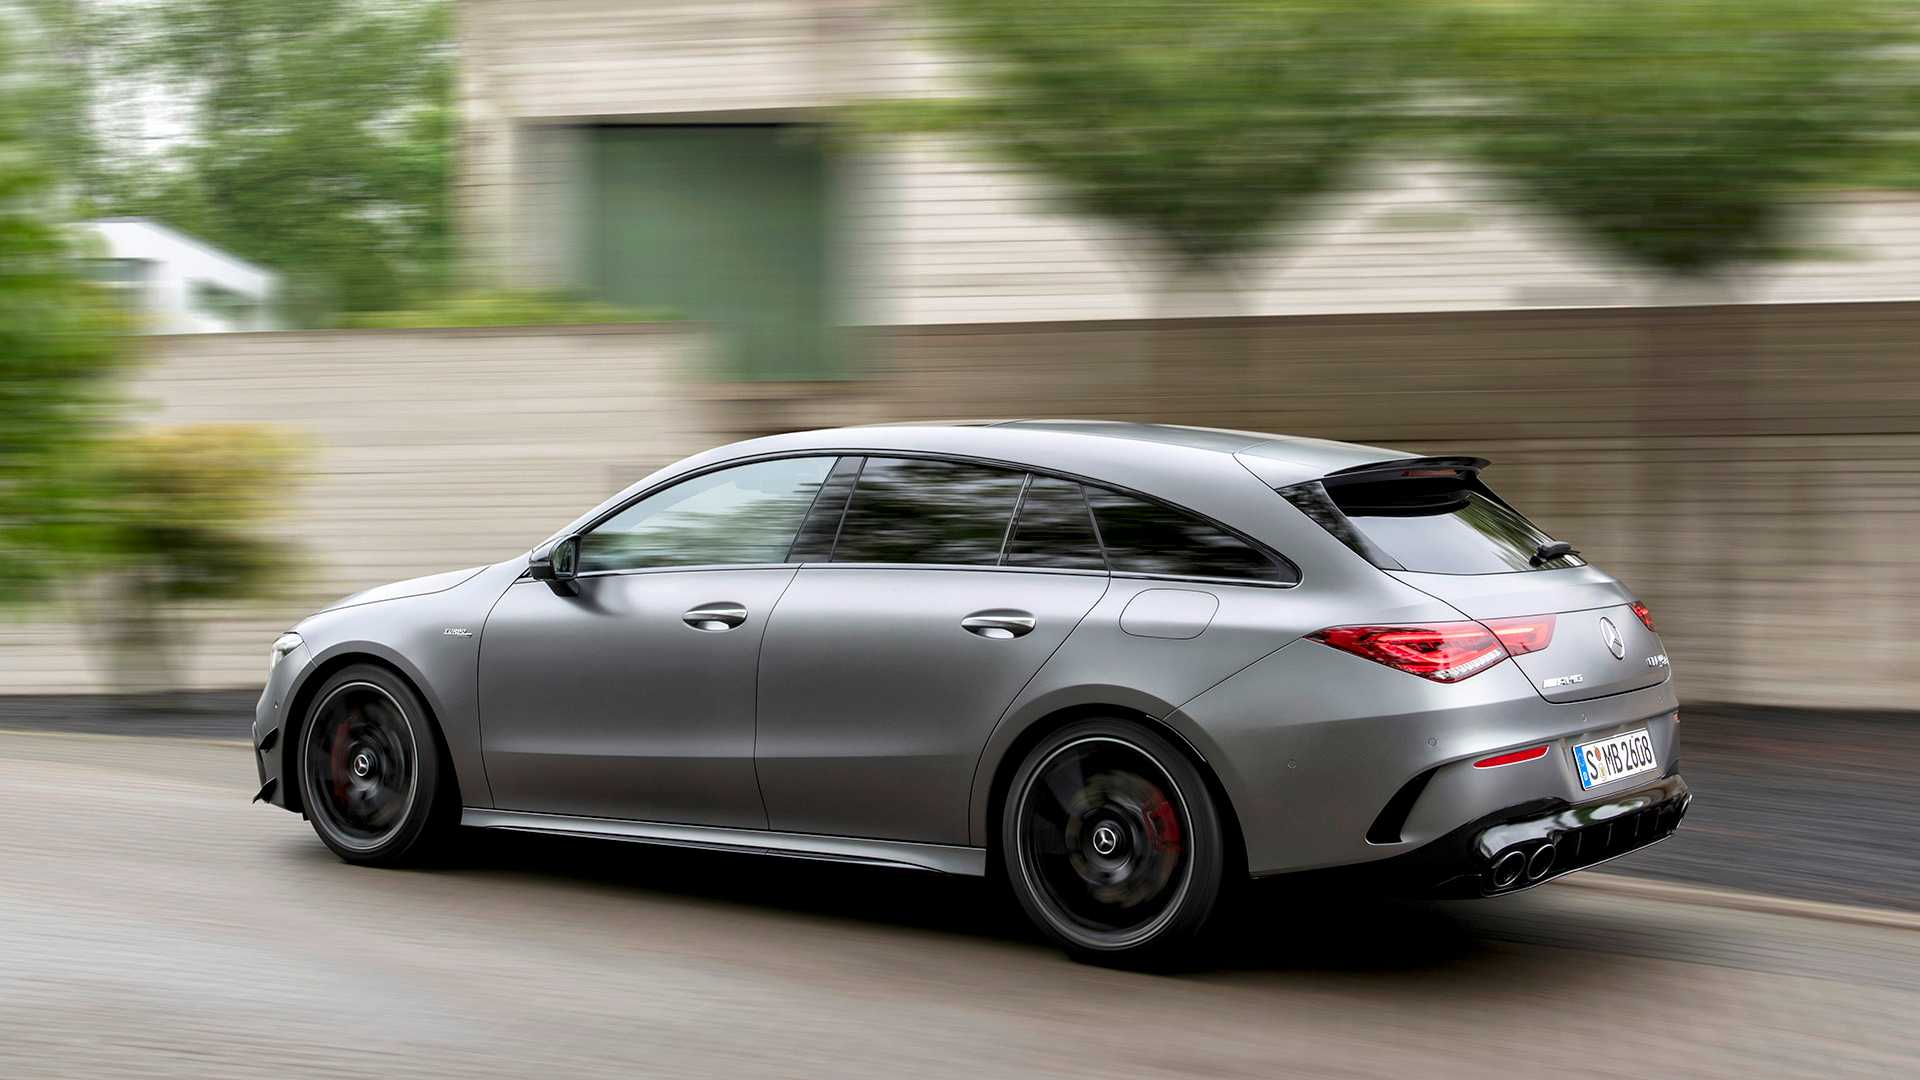 2020 Mercedes-AMG CLA 45 S 4MATIC+ Shooting Brake Rear Three-Quarter Wallpapers (12)